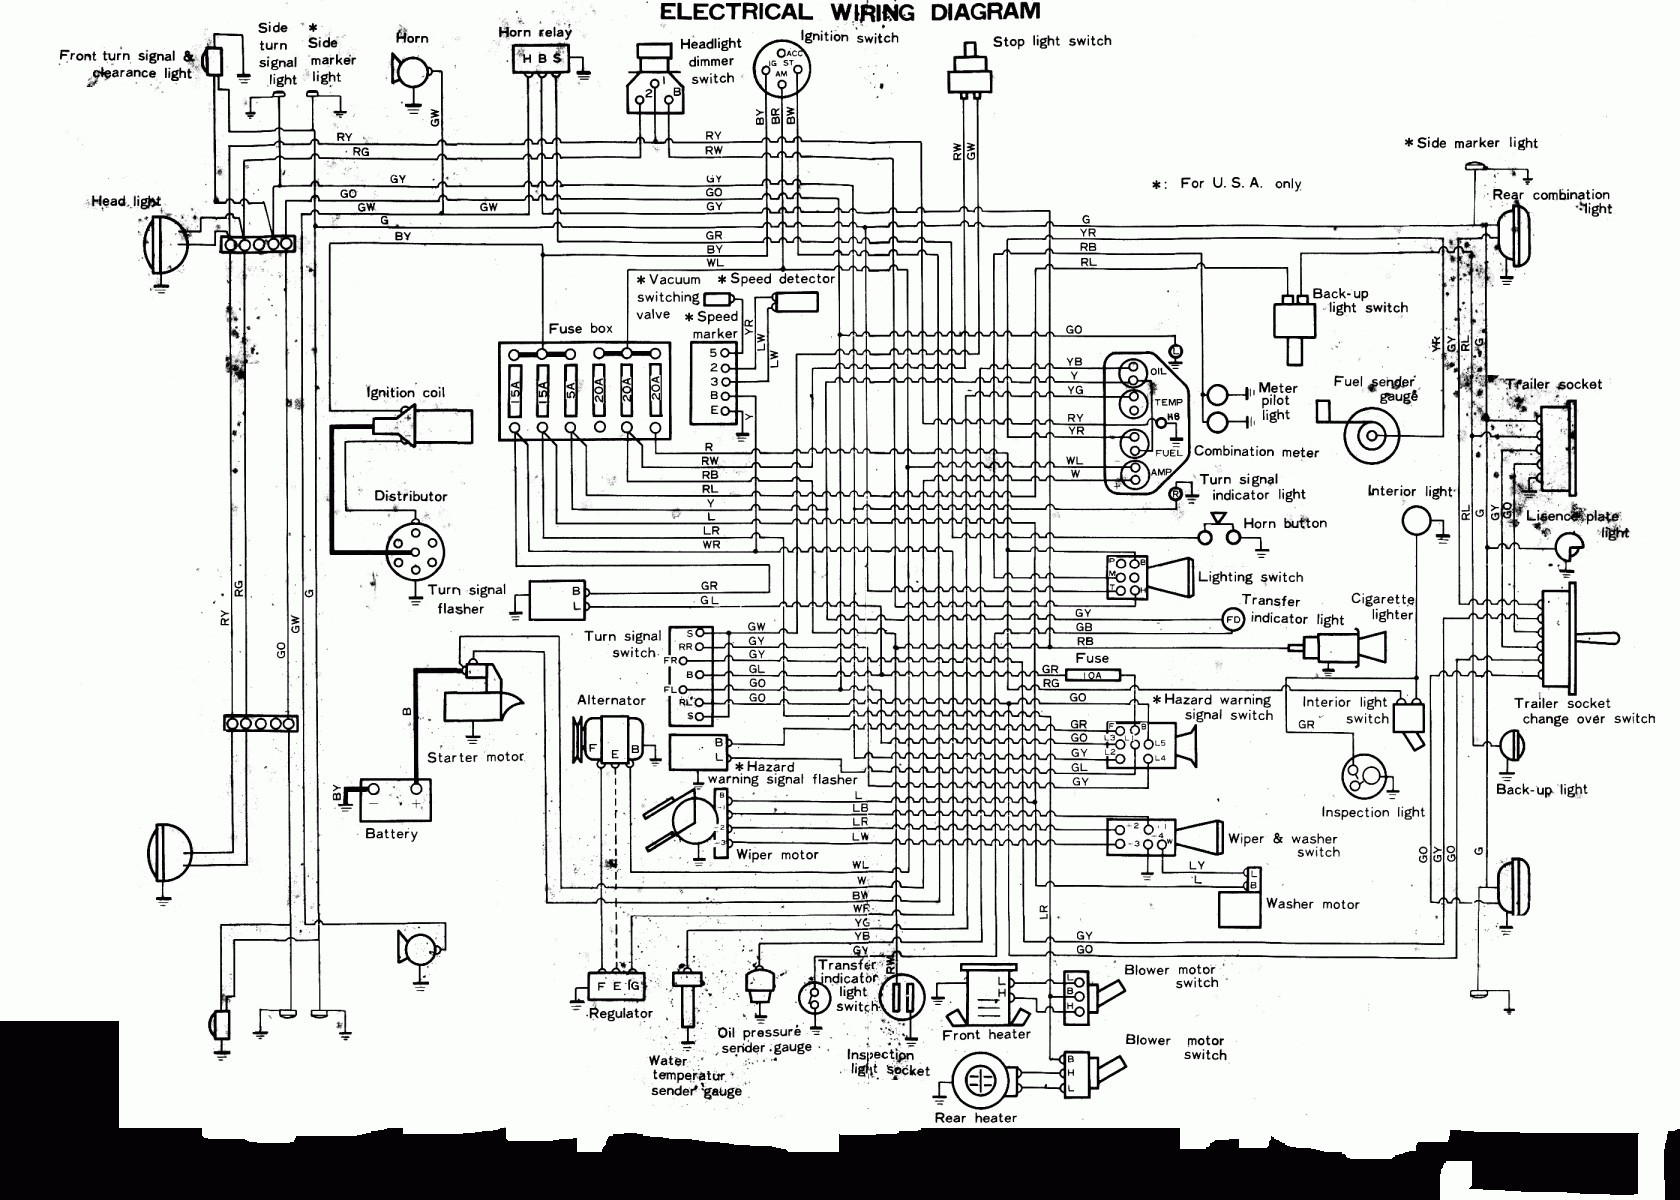 toyota vdj79 wiring diagram toyota fujitsu ten 86120 wiring diagram wiring diagram image